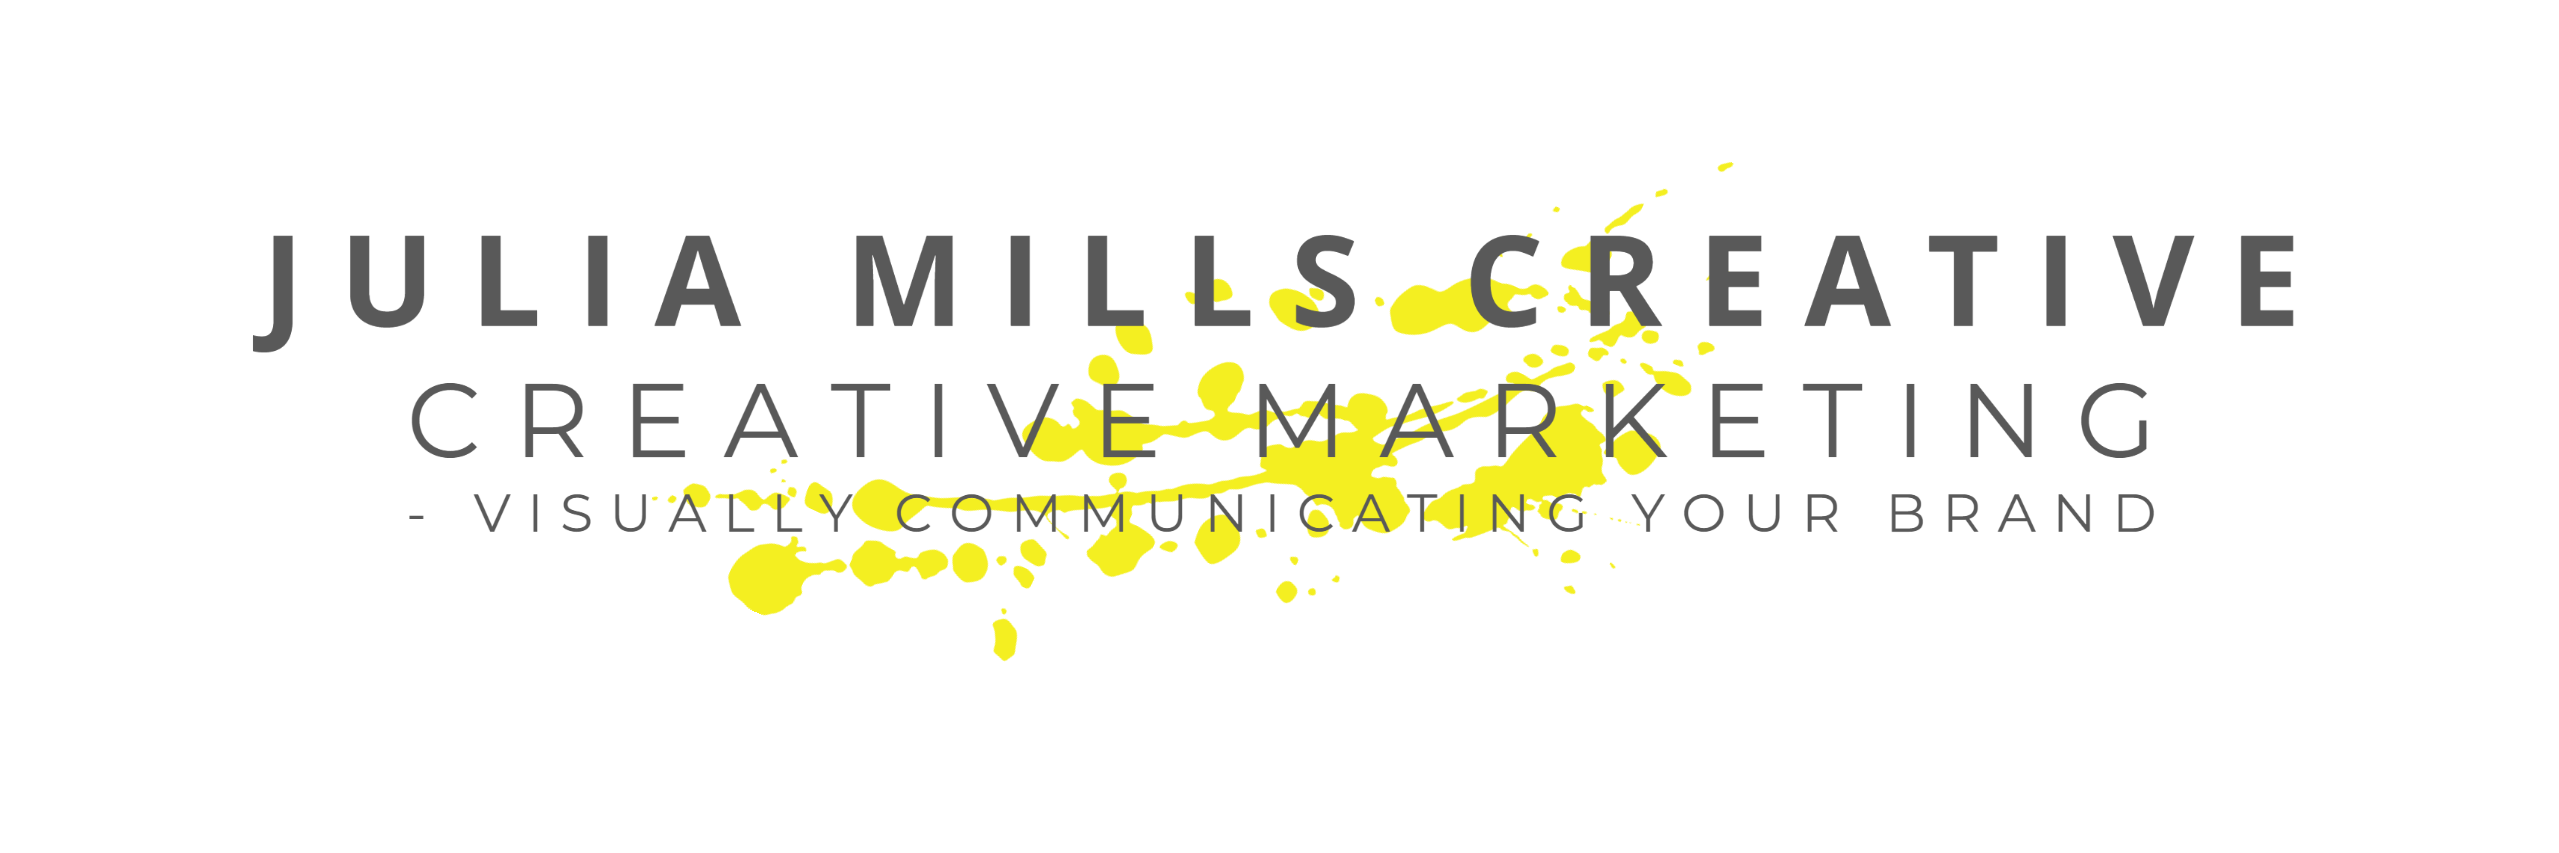 JULIAMILLSCREATIVE Logo